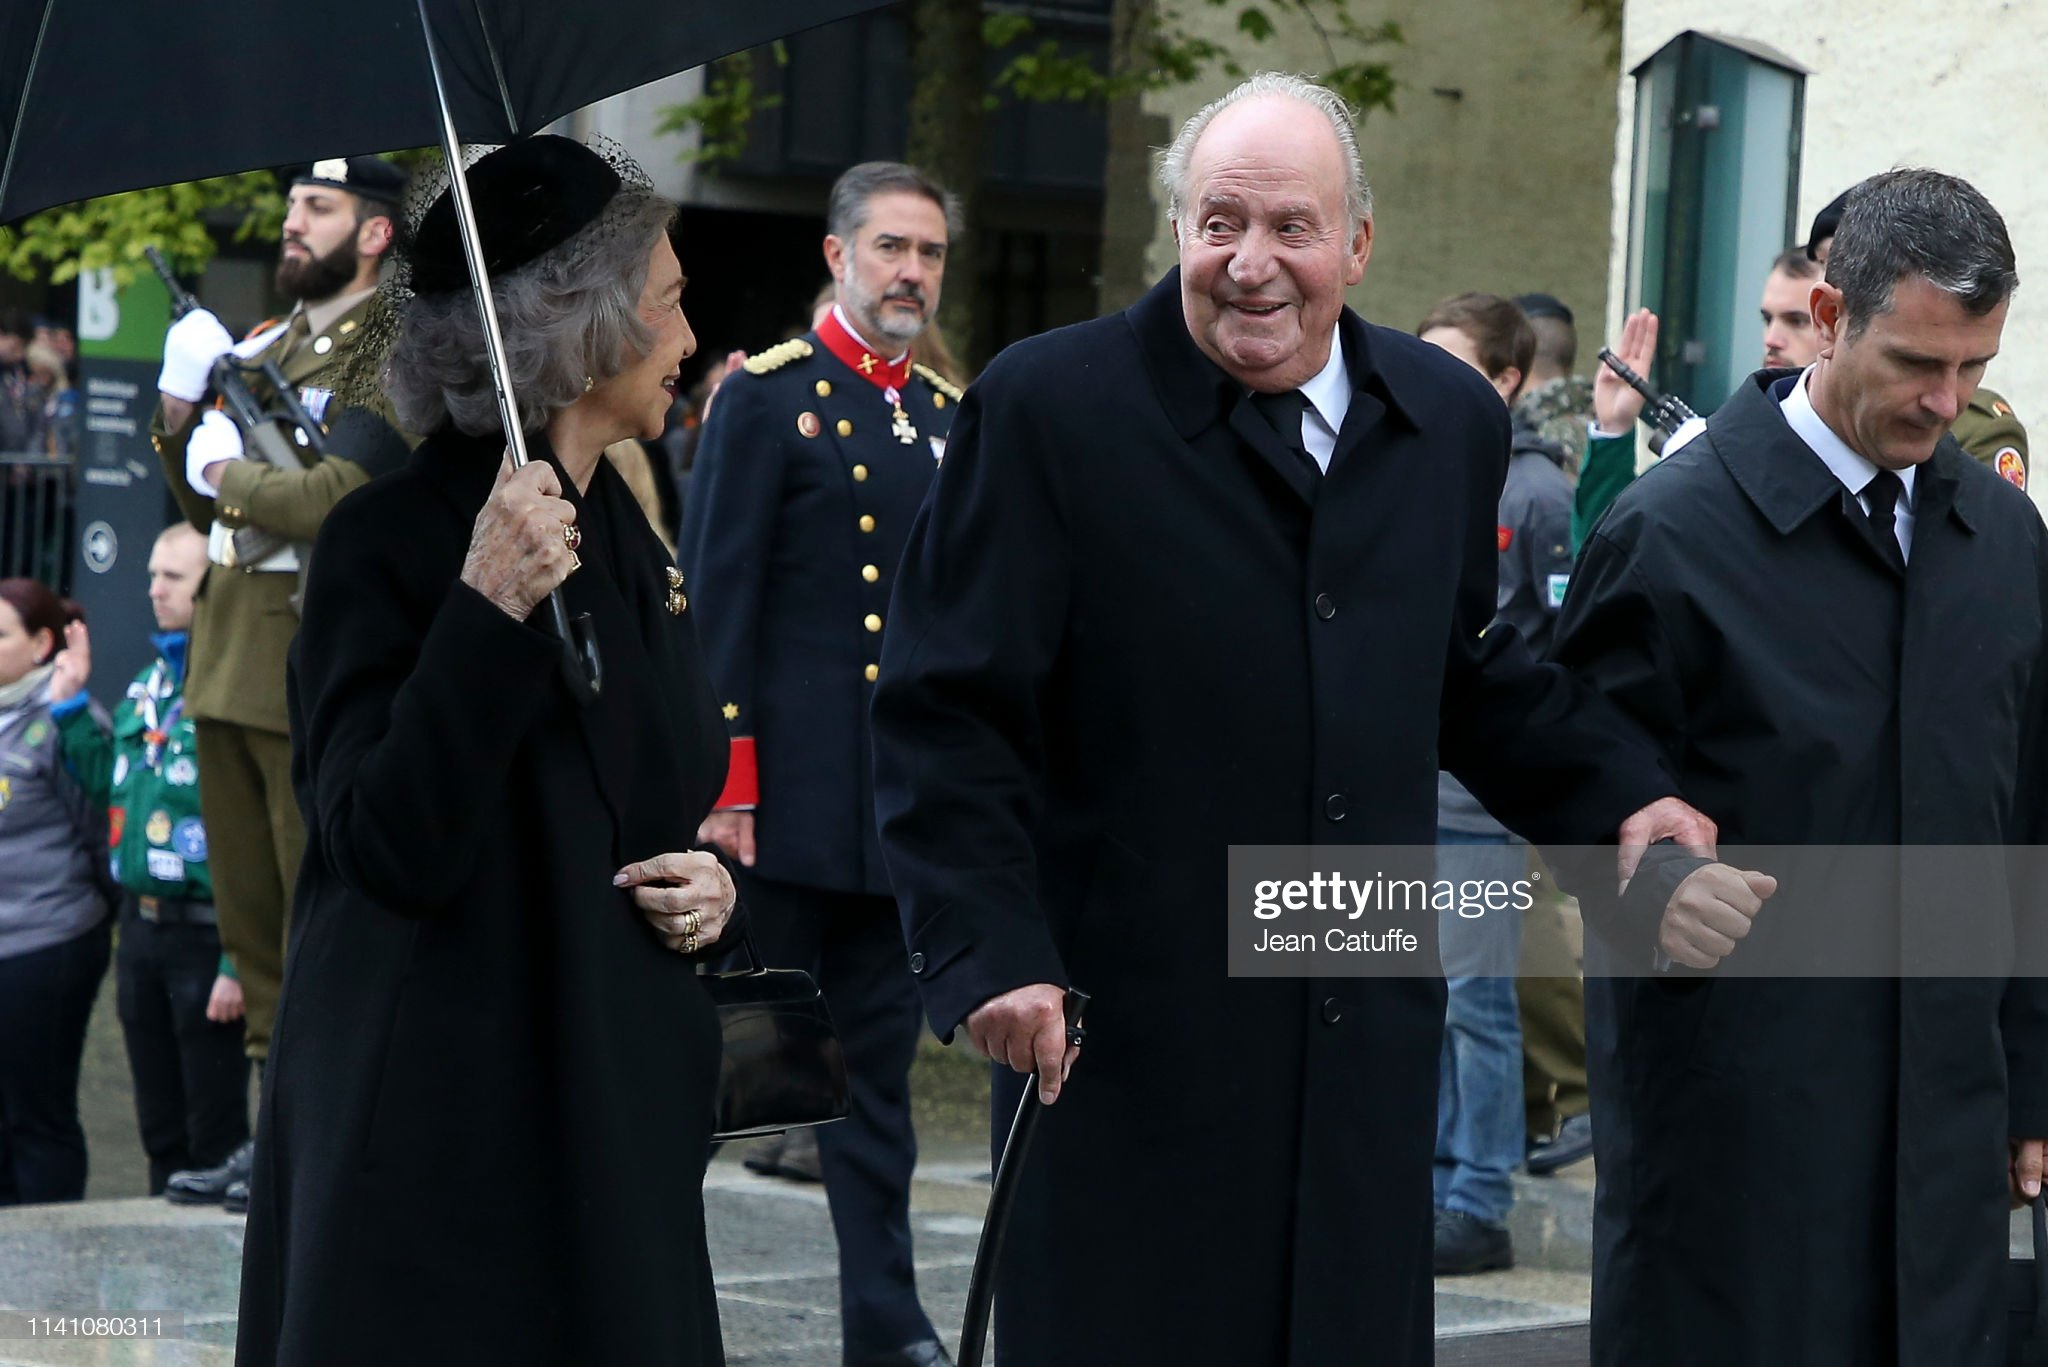 Похороны Великого Герцога Жана https://media.gettyimages.com/photos/juan-carlos-i-of-spain-and-queen-sofia-of-spain-arrive-for-the-of-picture-id1141080311?s=2048x2048